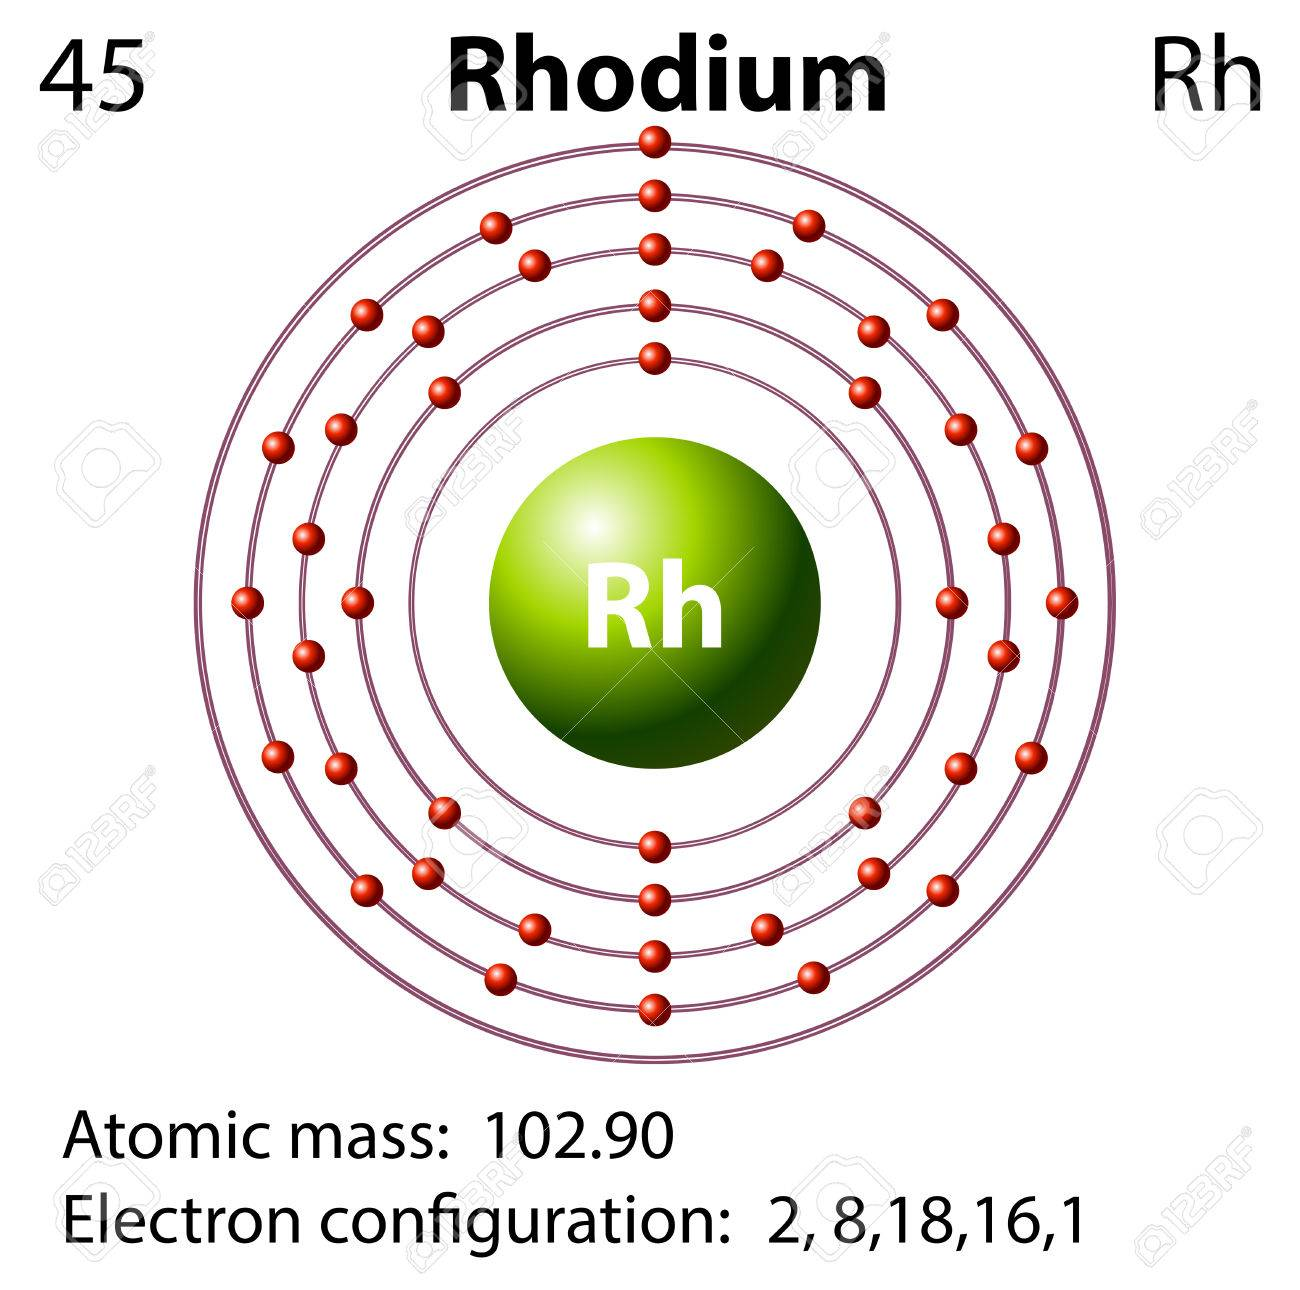 Symbol And Electron Diagram For Rhodium Illustration Royalty Free